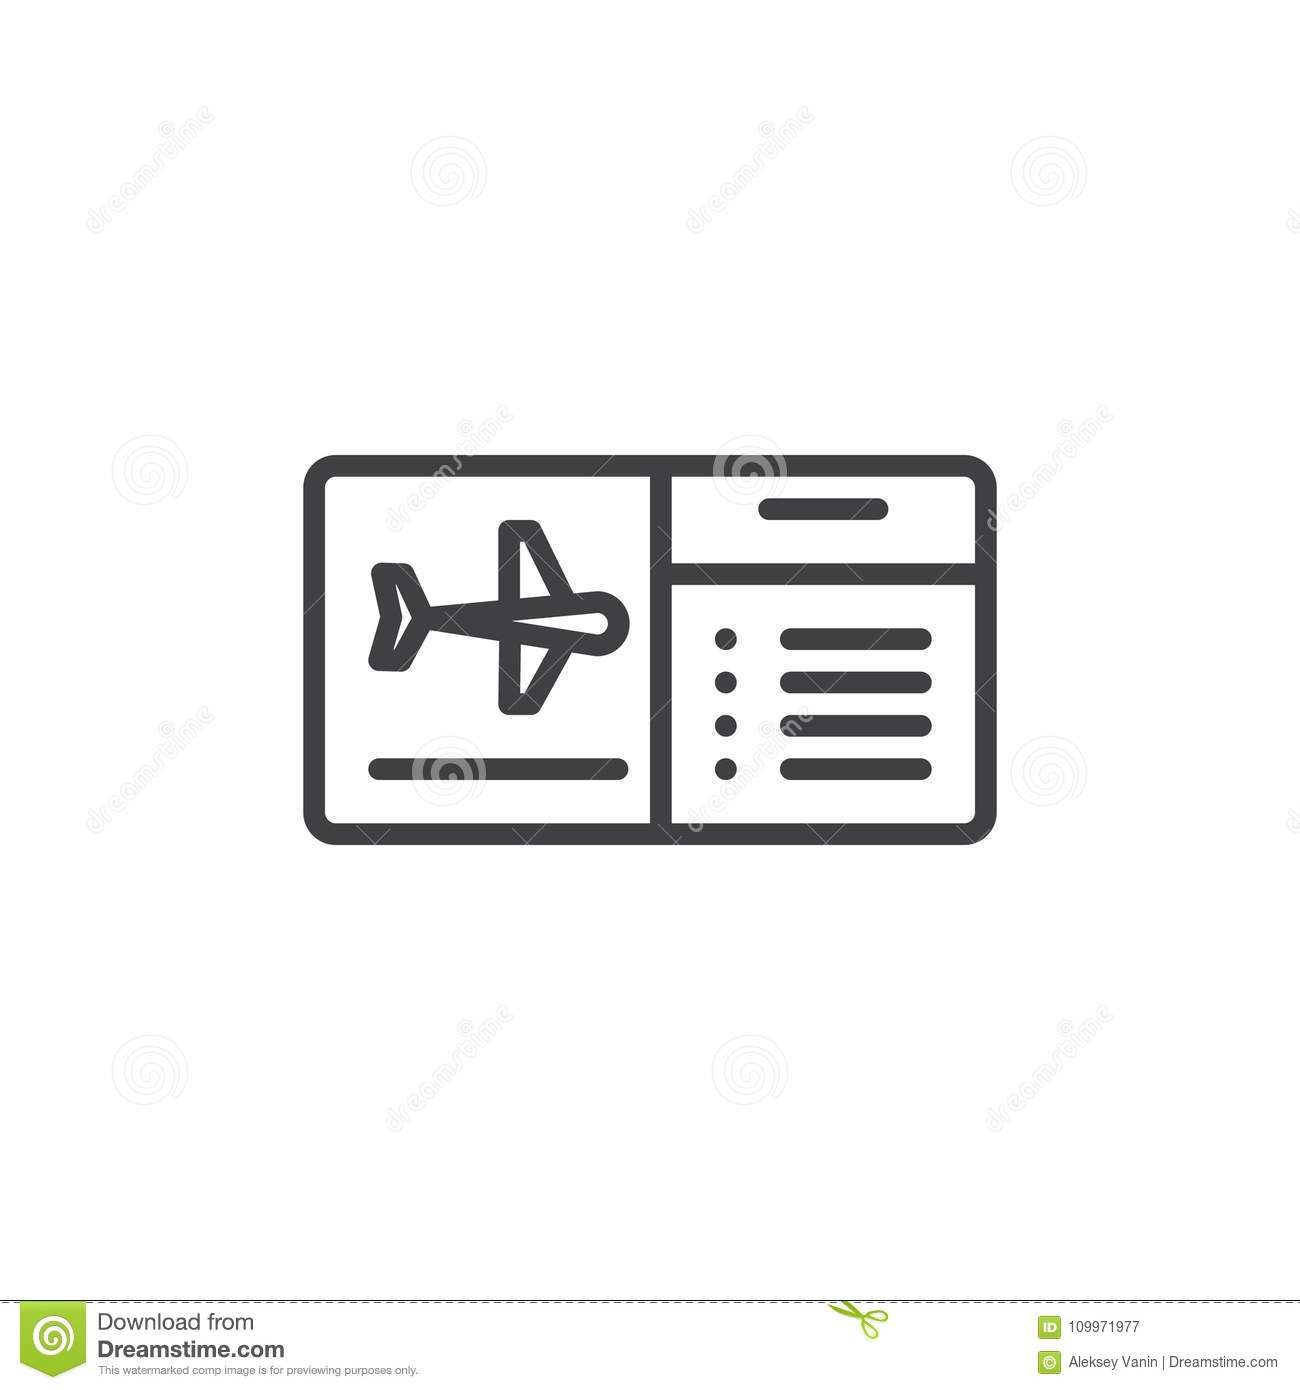 Download Air Ticket Outline Icon Stock Vector Illustration Of Single